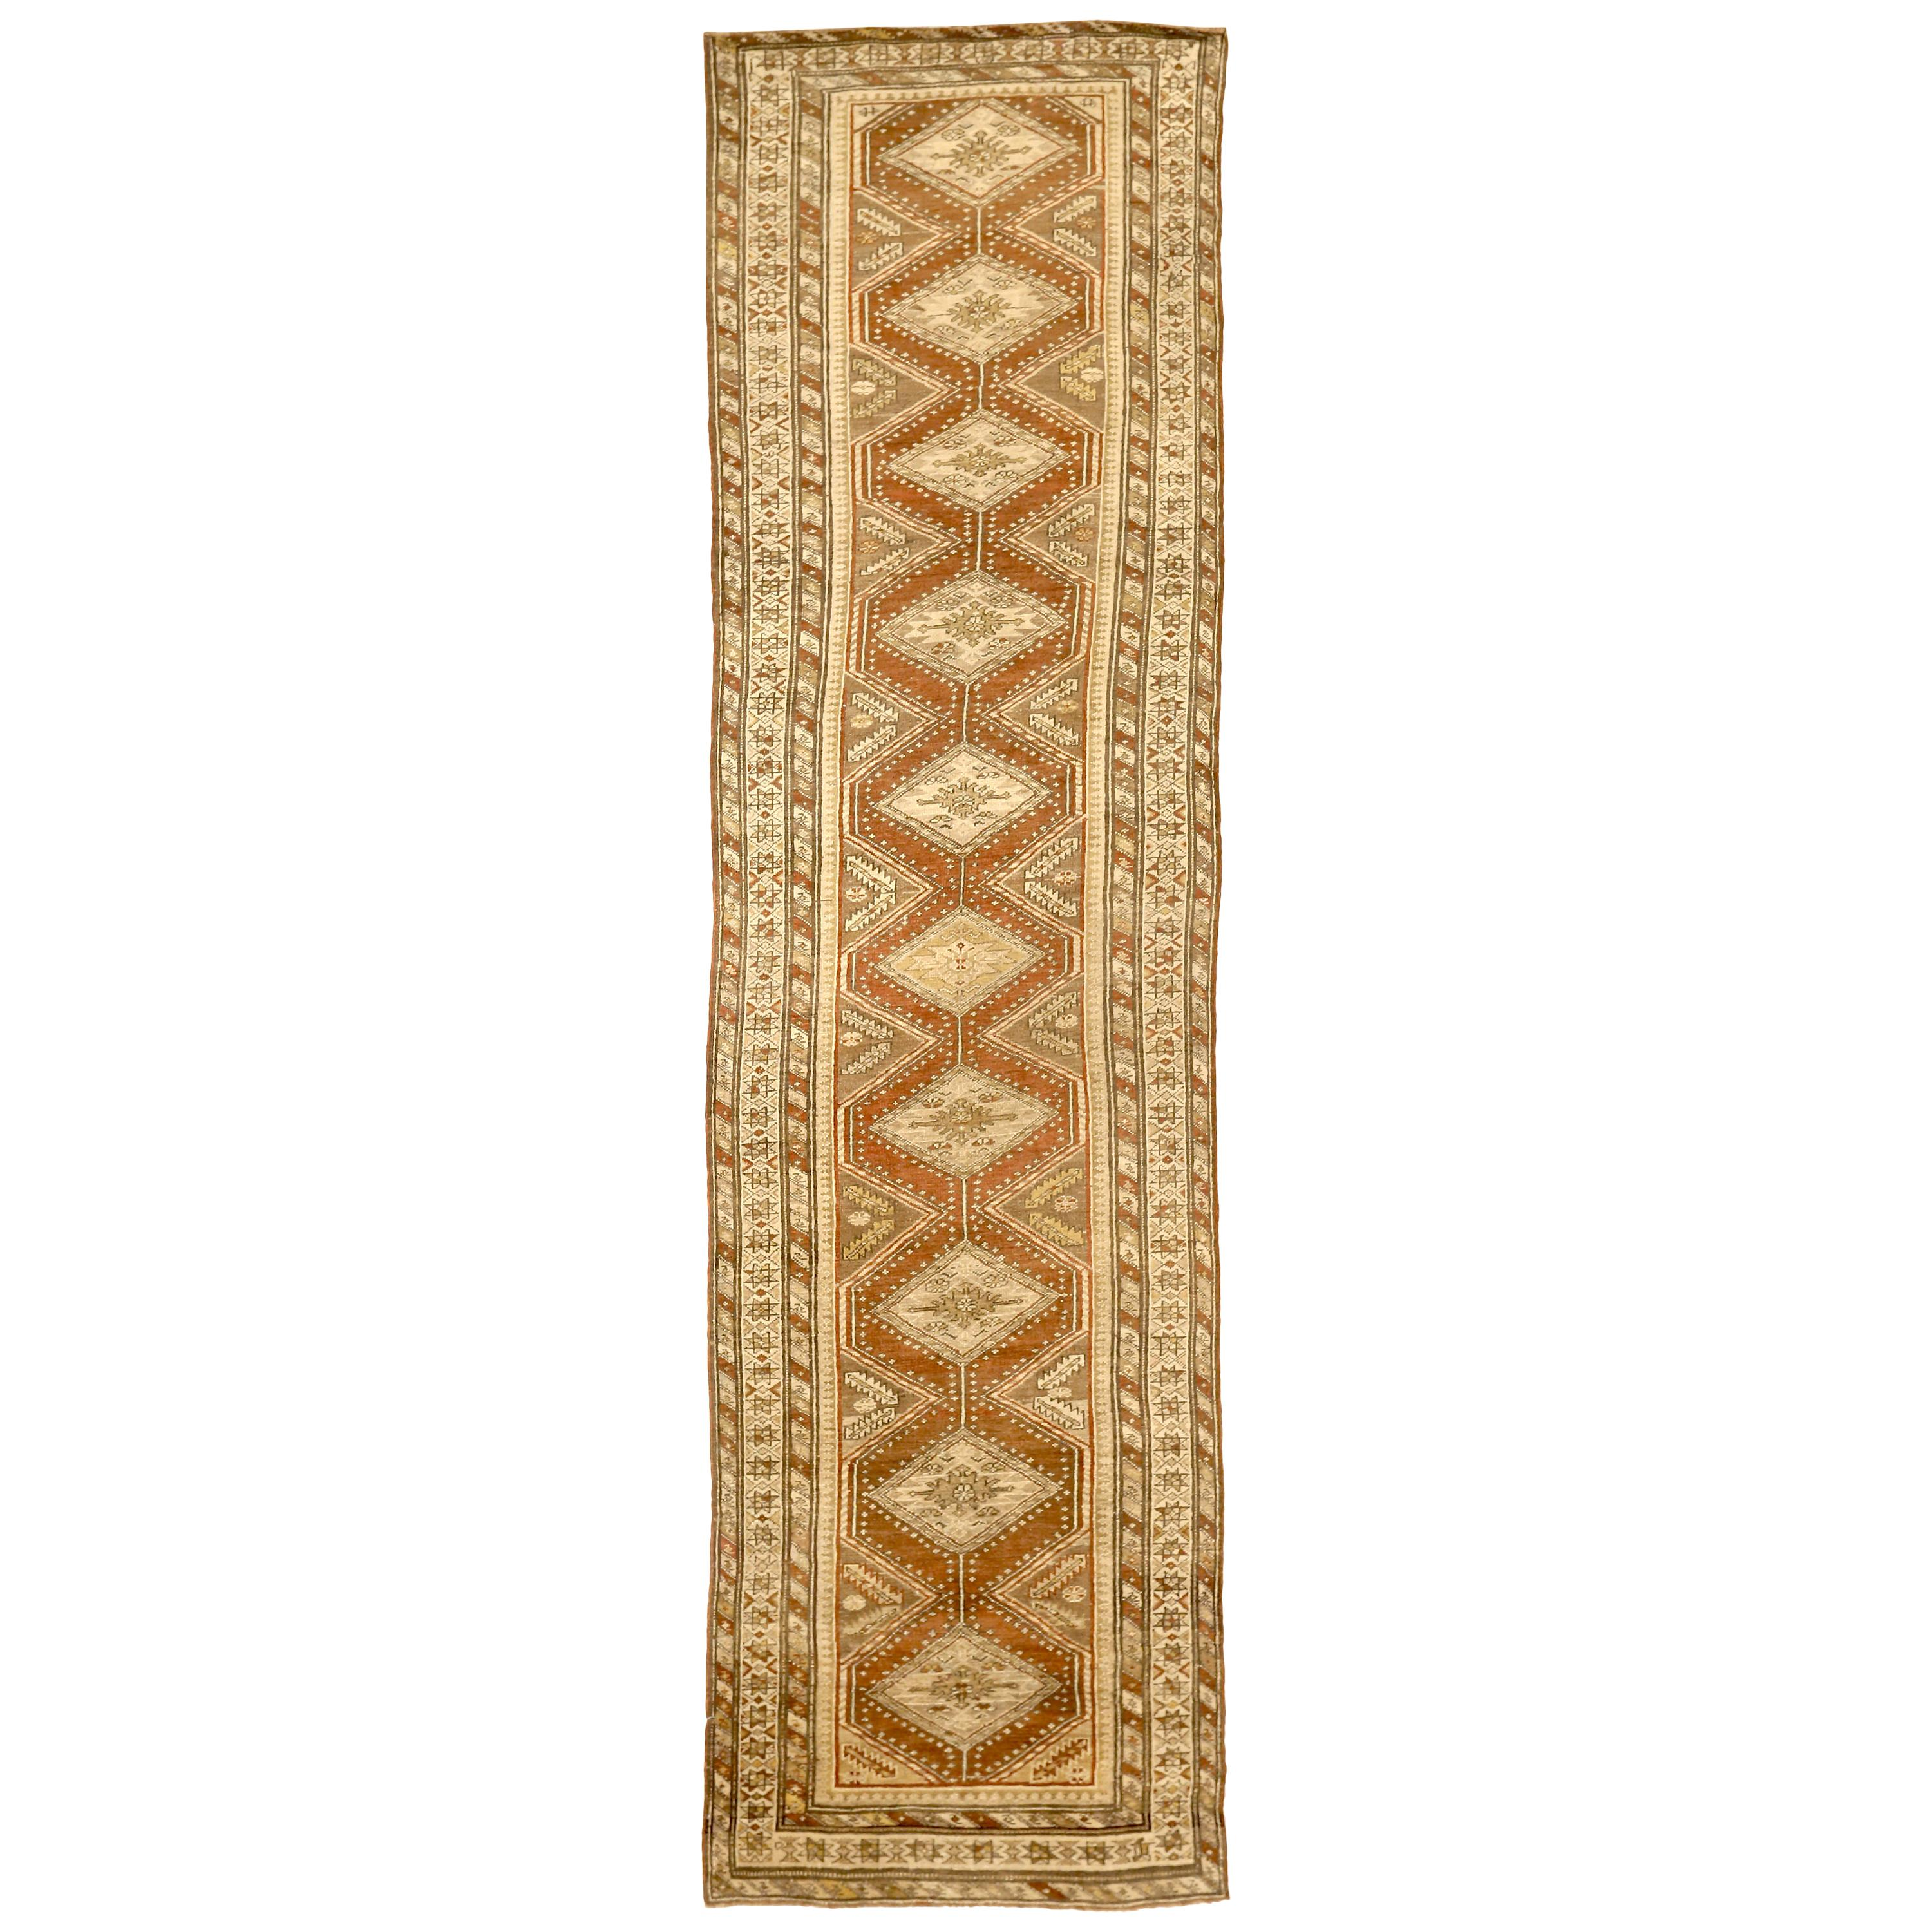 Antique Persian Malayer Runner Rug with Geometric Patterns Orange Field